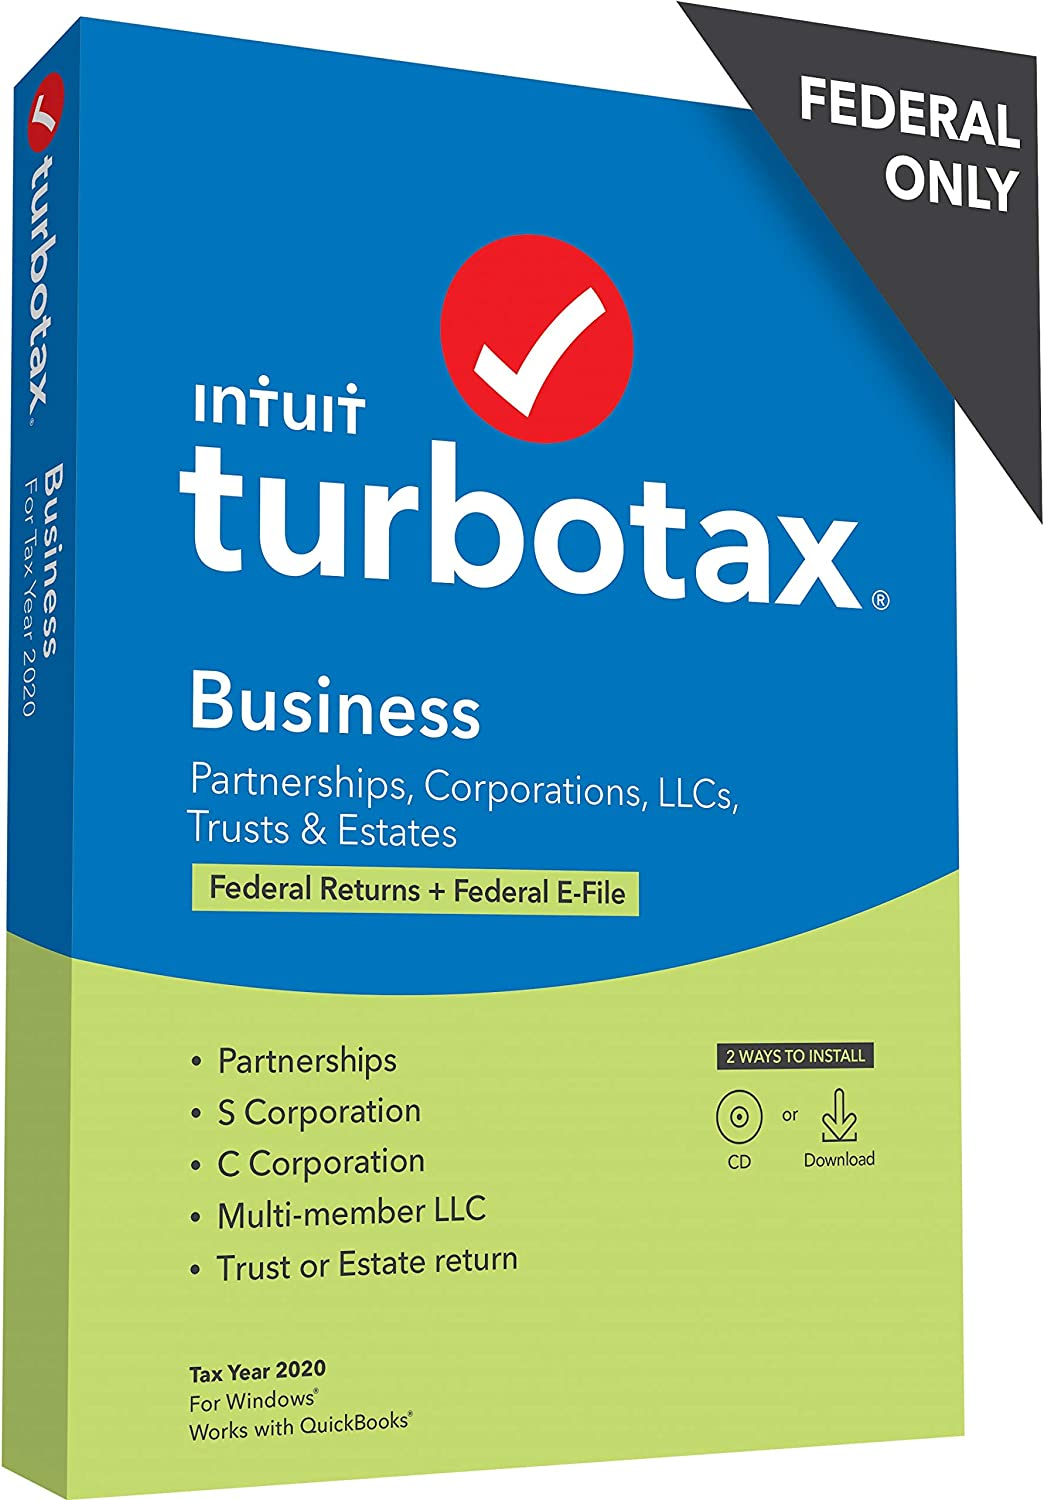 TurboTax Business Discount Coupon Code